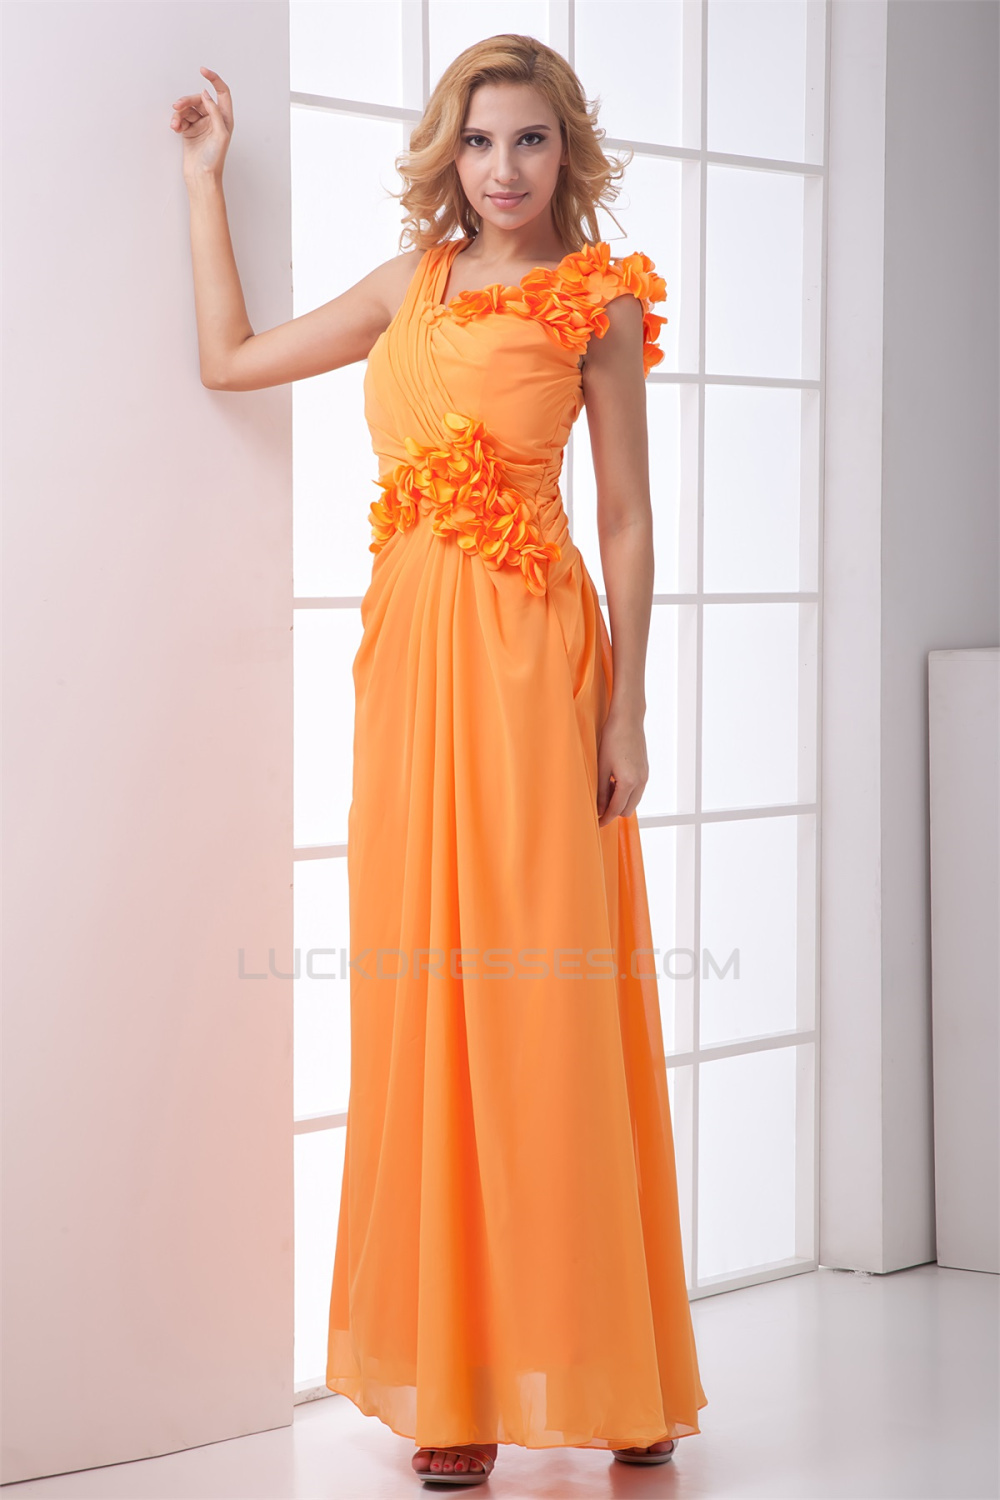 Flowers ankle length a line chiffon long bridesmaid dresses 02010167 handmade flowers ankle length a line chiffon long bridesmaid dresses 02010167 ombrellifo Image collections